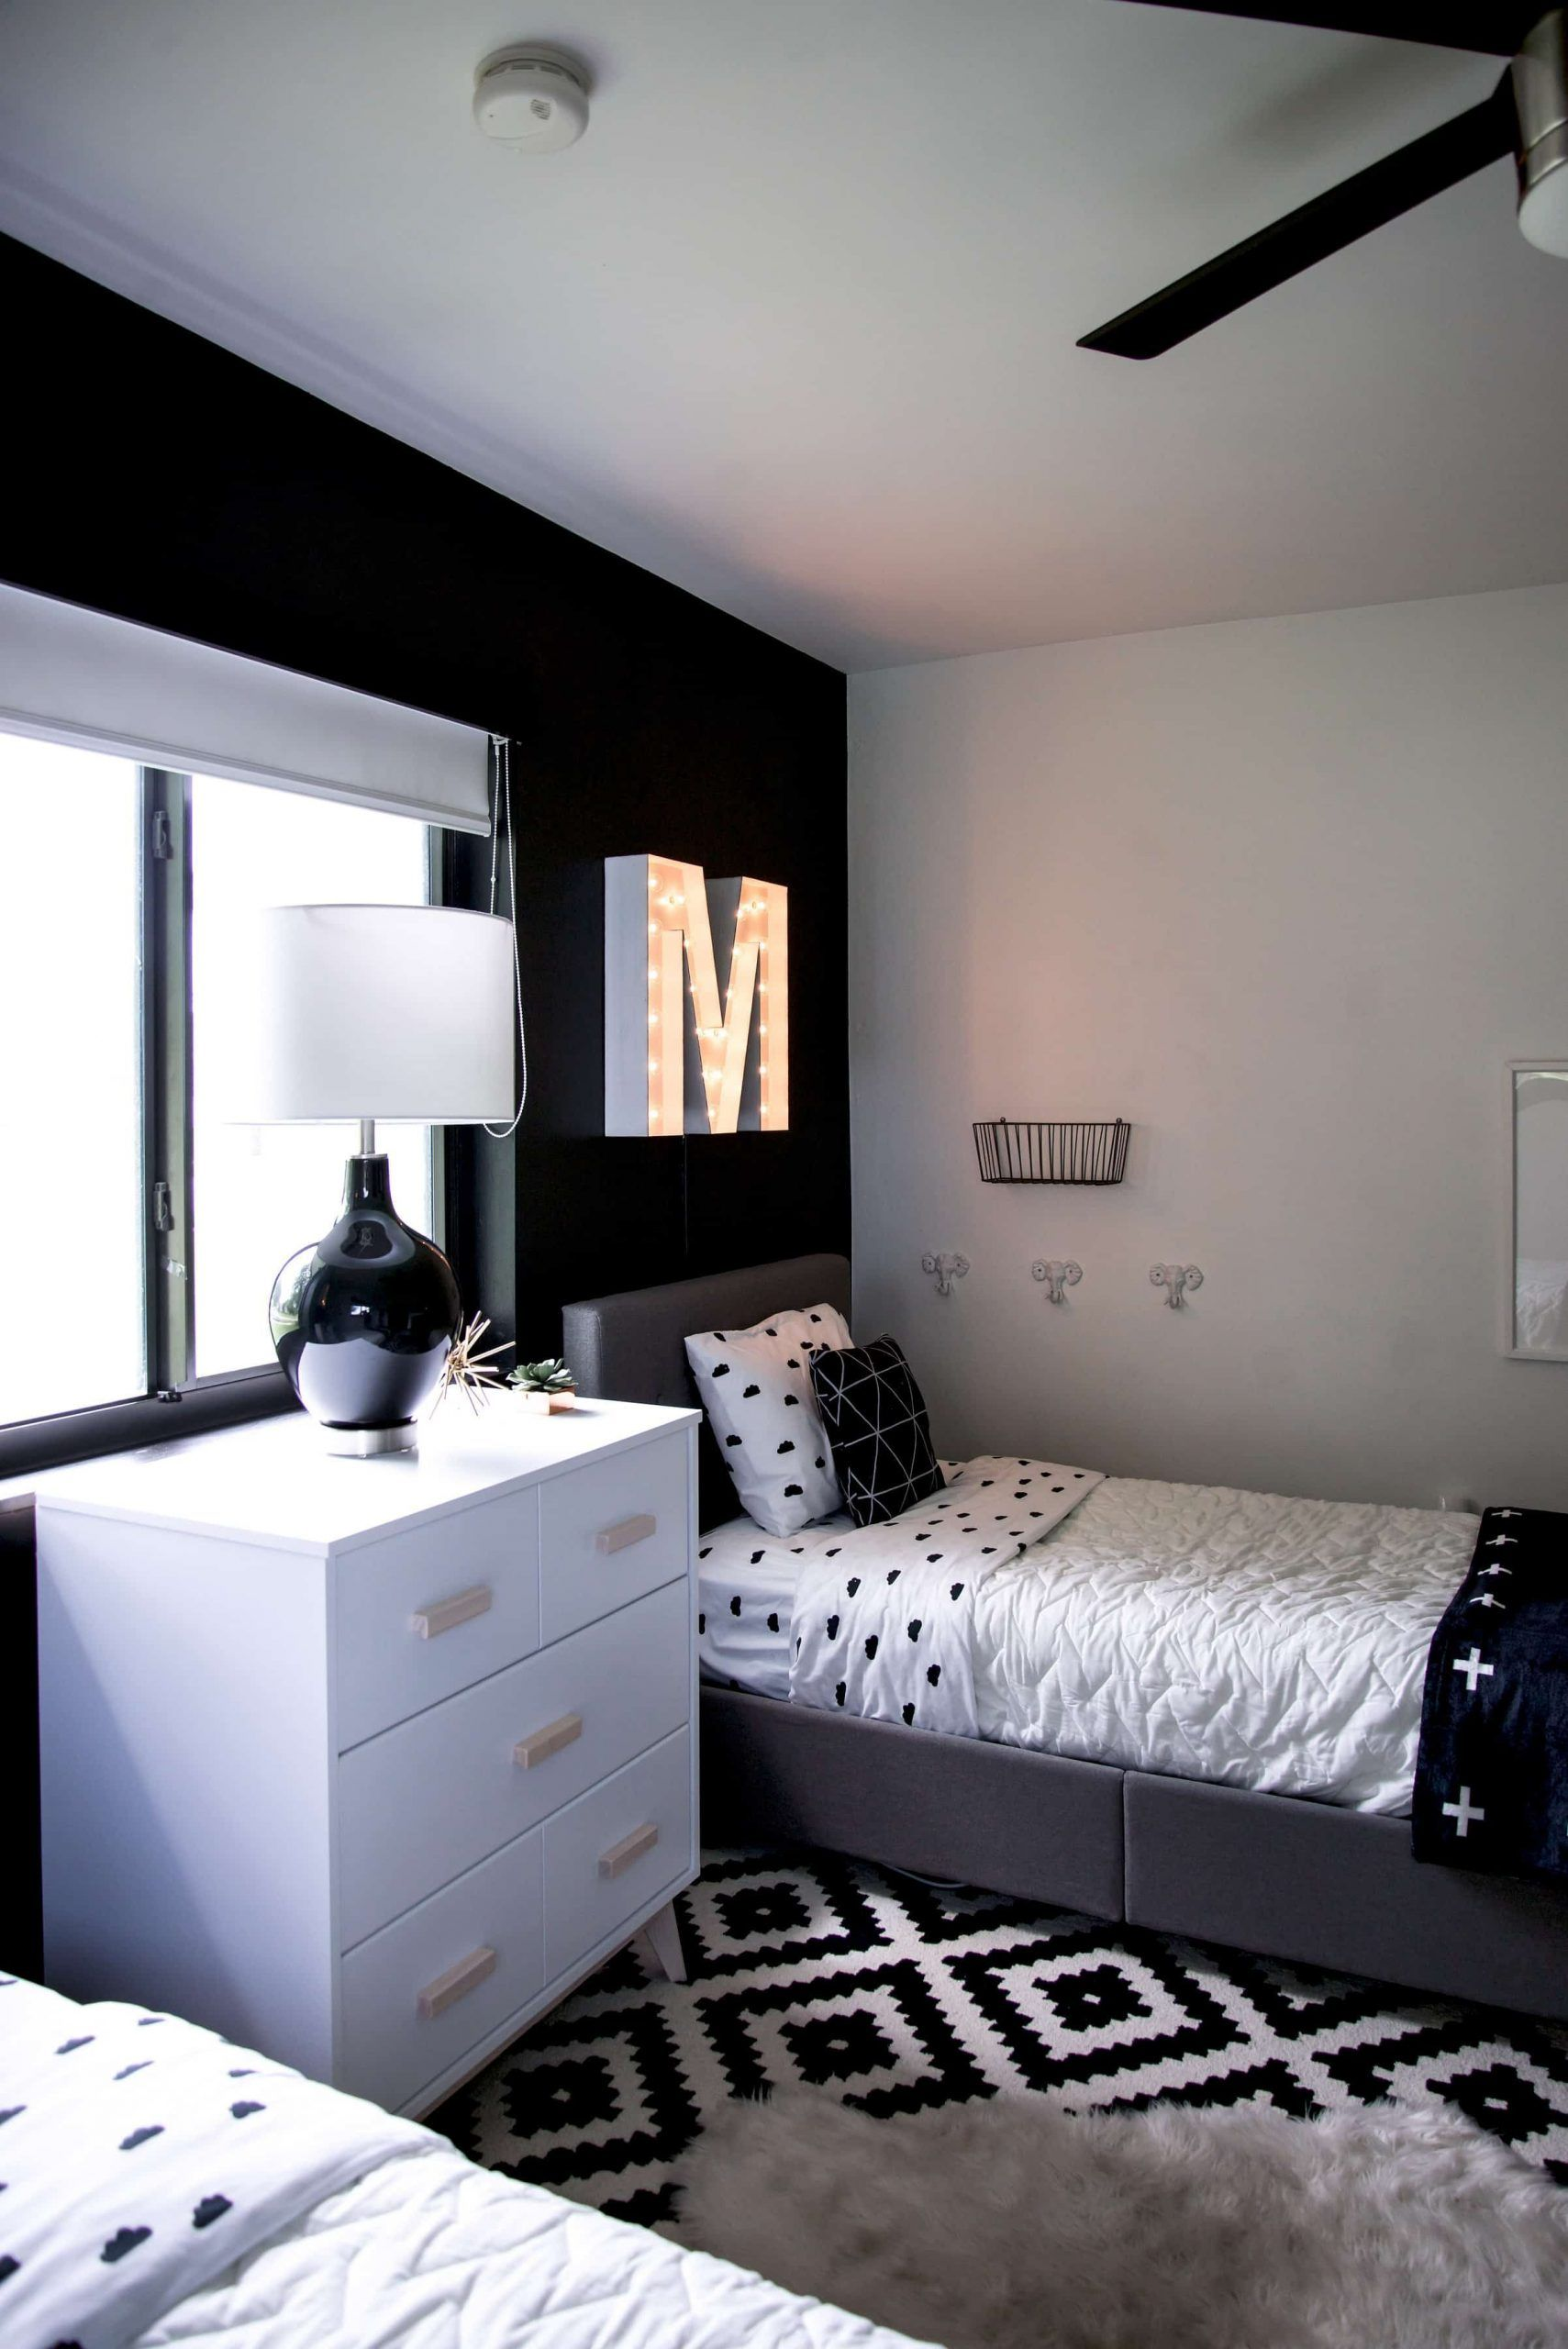 Black And White Modern Kids Room In 2020 Small Room Bedroom Modern Kids Room Modern Room